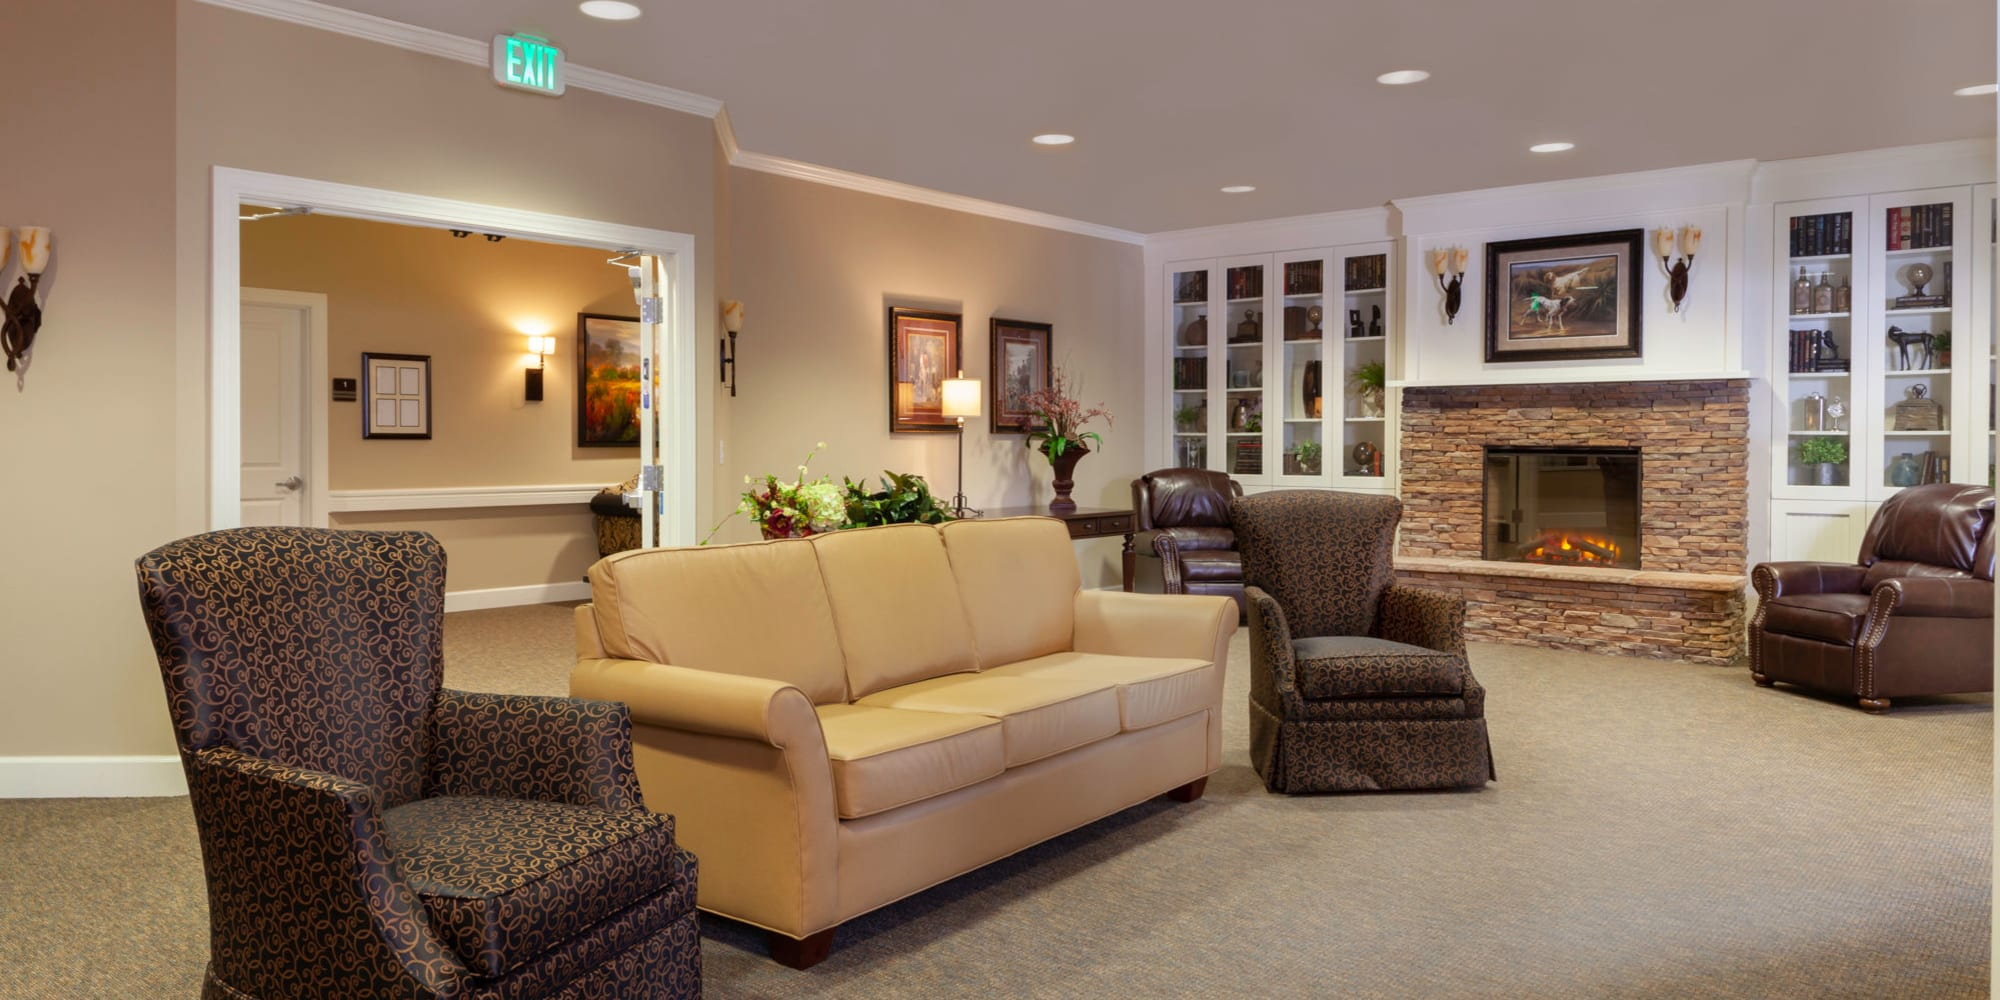 JEA Senior Living living room with fire place